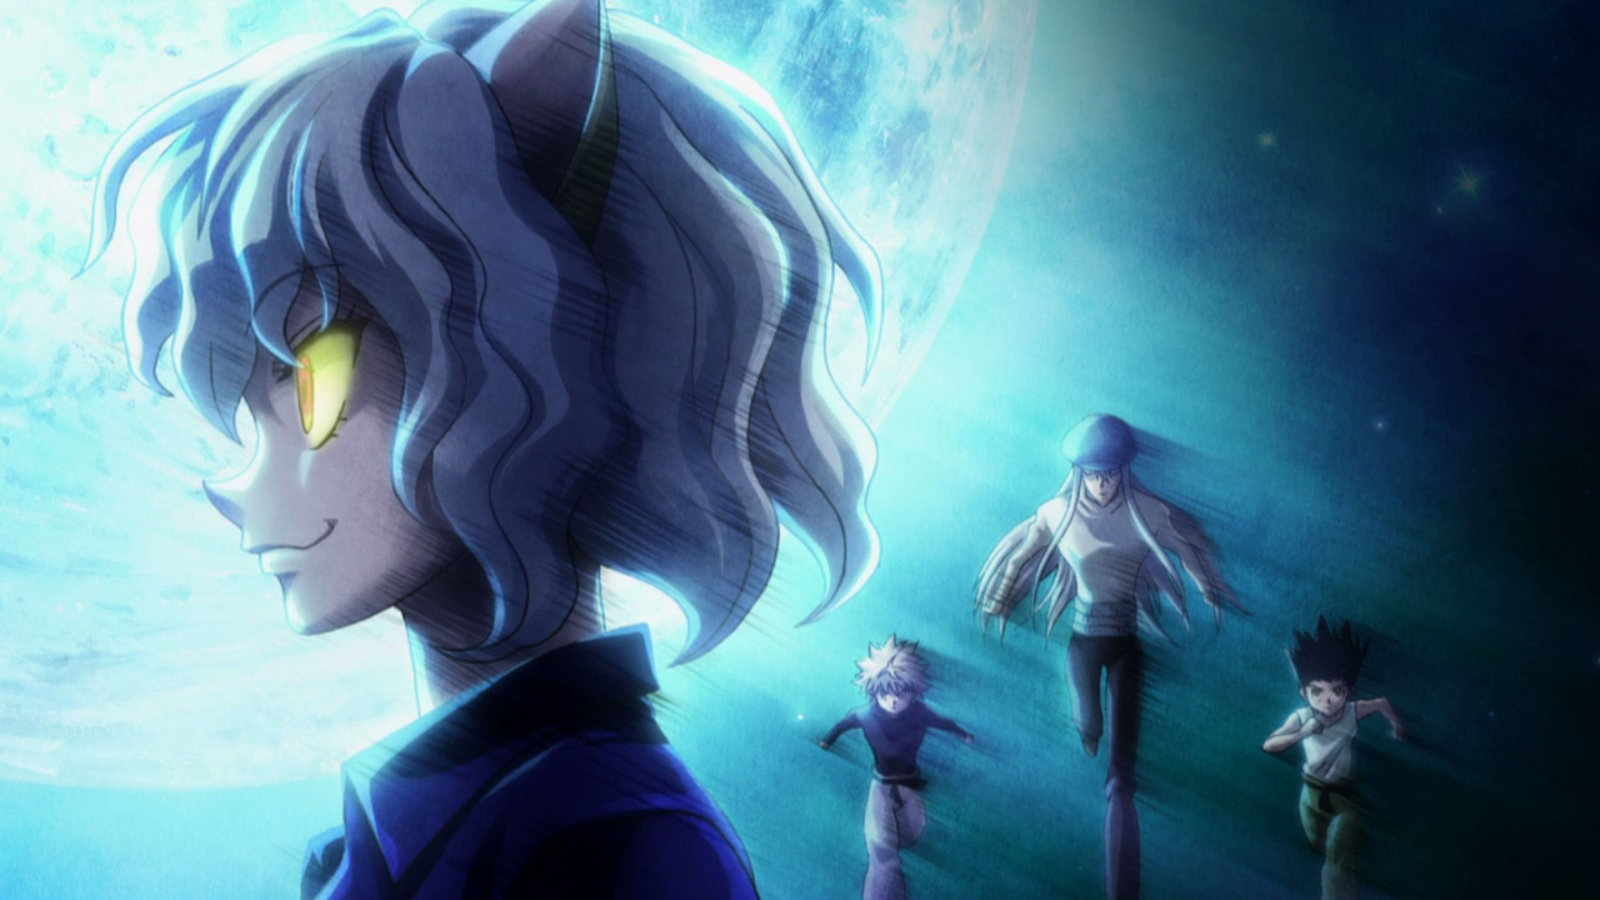 Kite hunter x hunter zerochan anime image board hunter x hunter download hunter x hunter image voltagebd Gallery